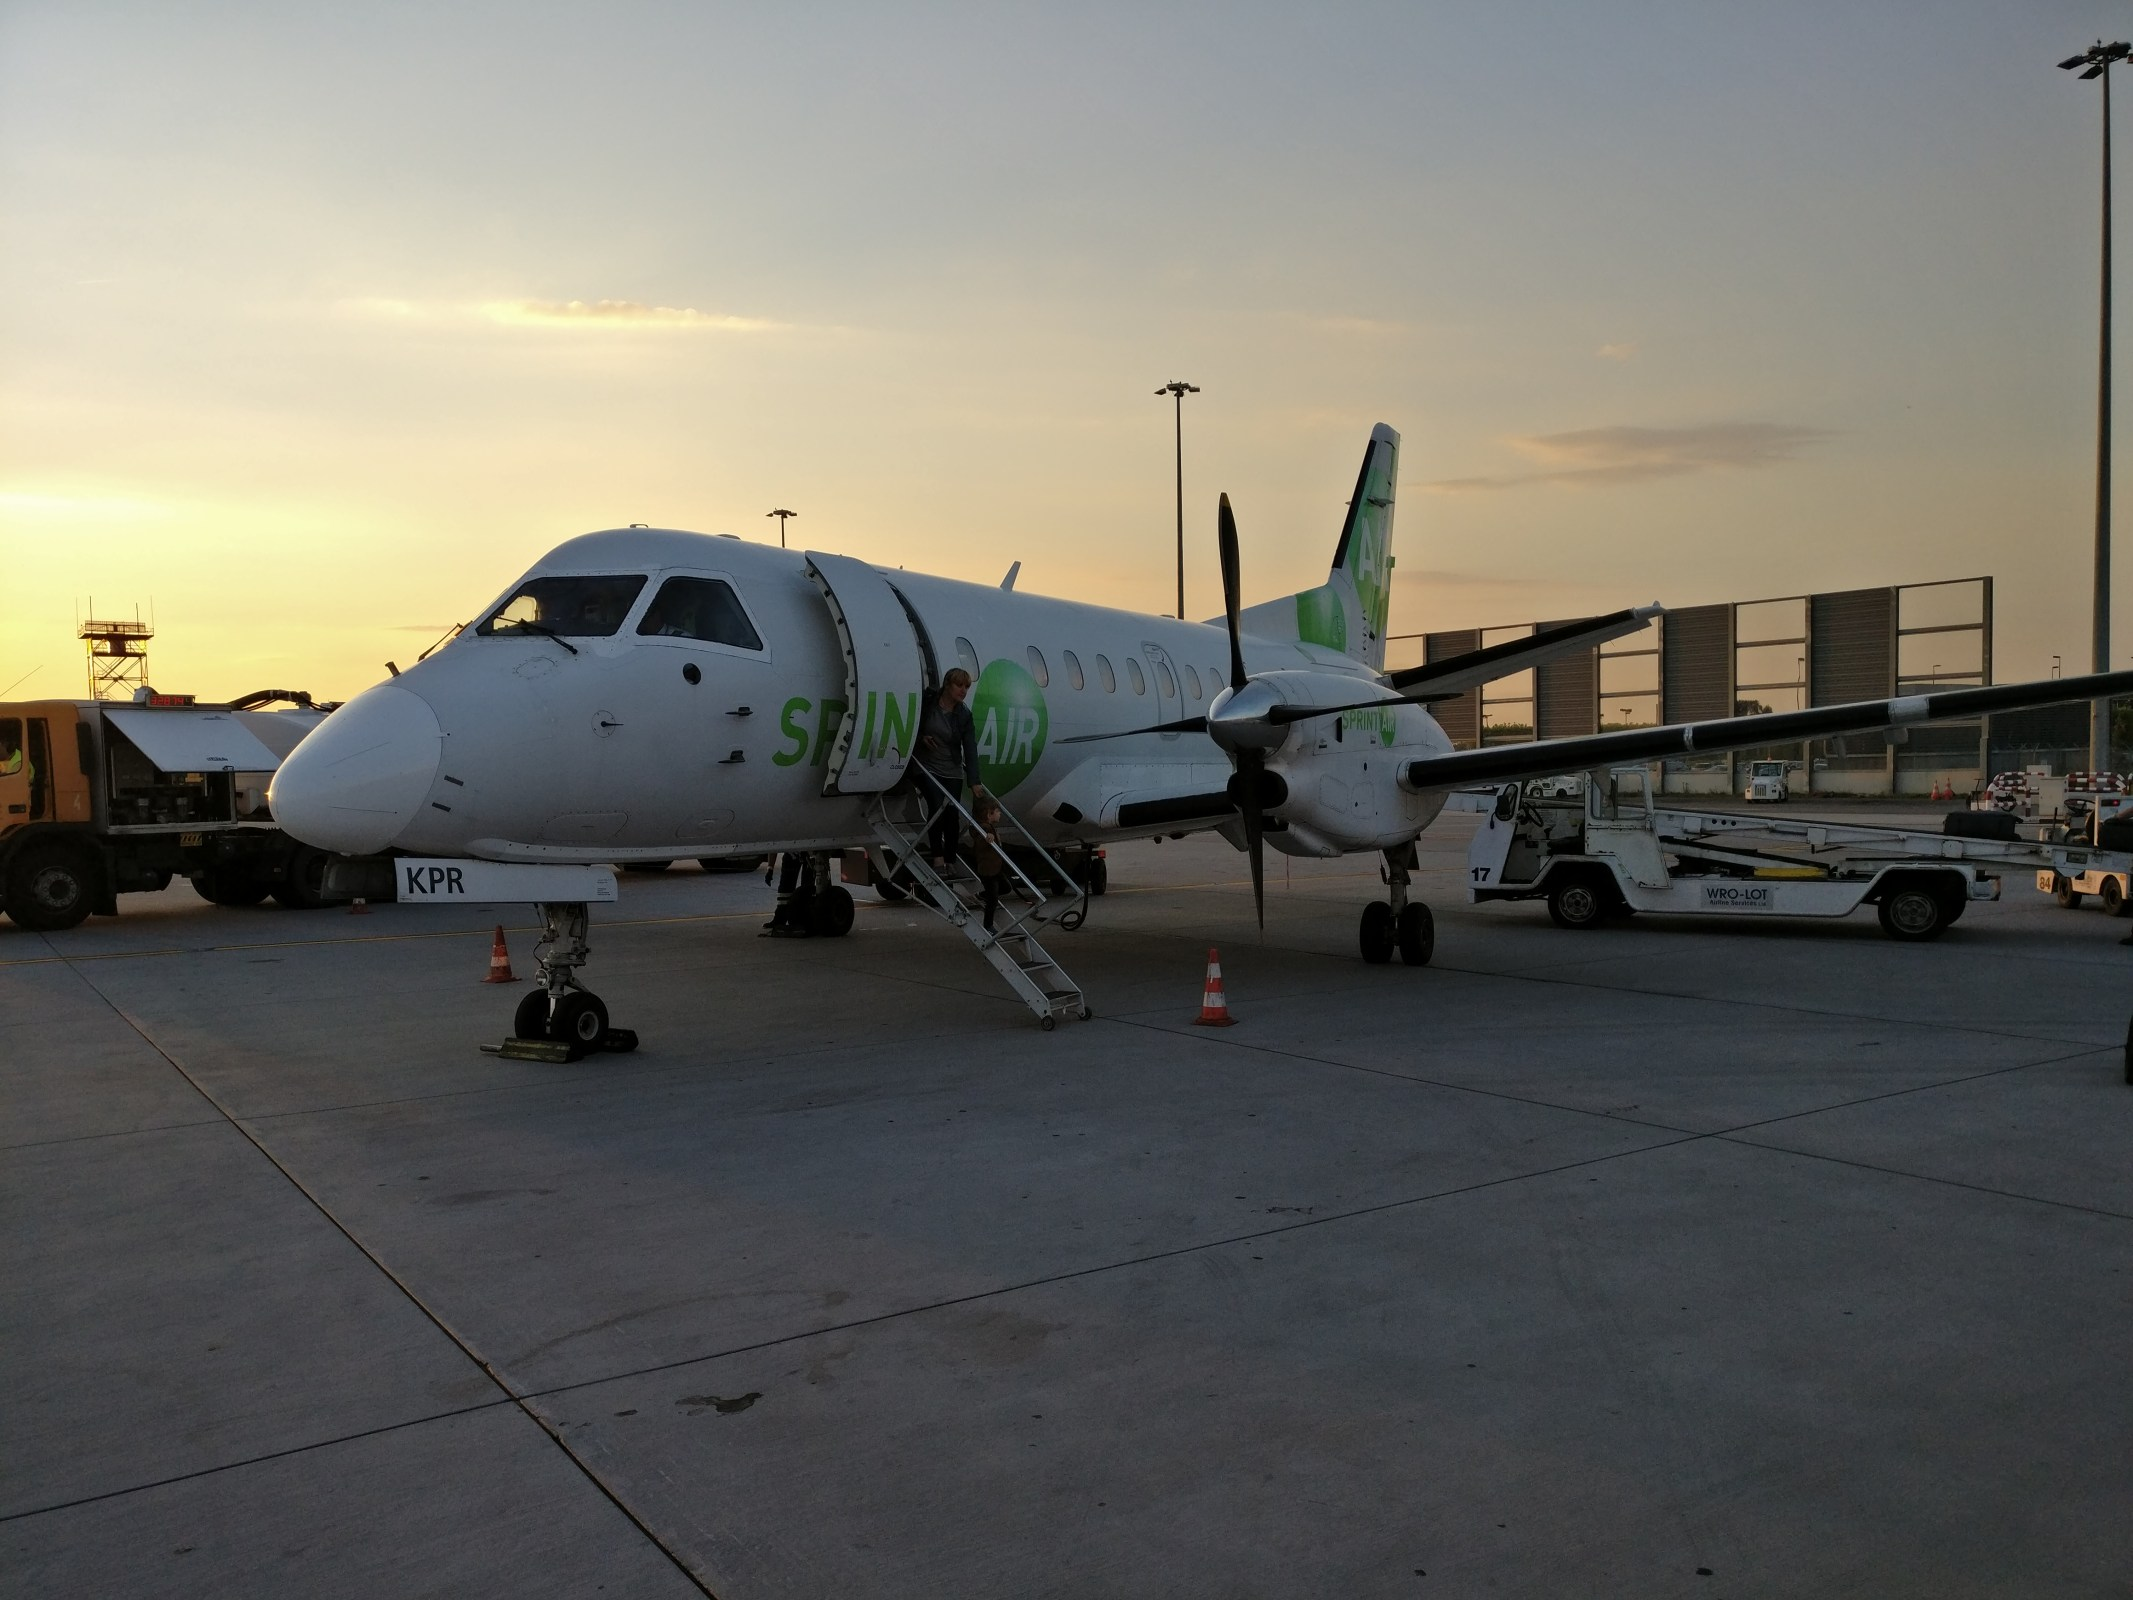 Sprint Air Saab 340